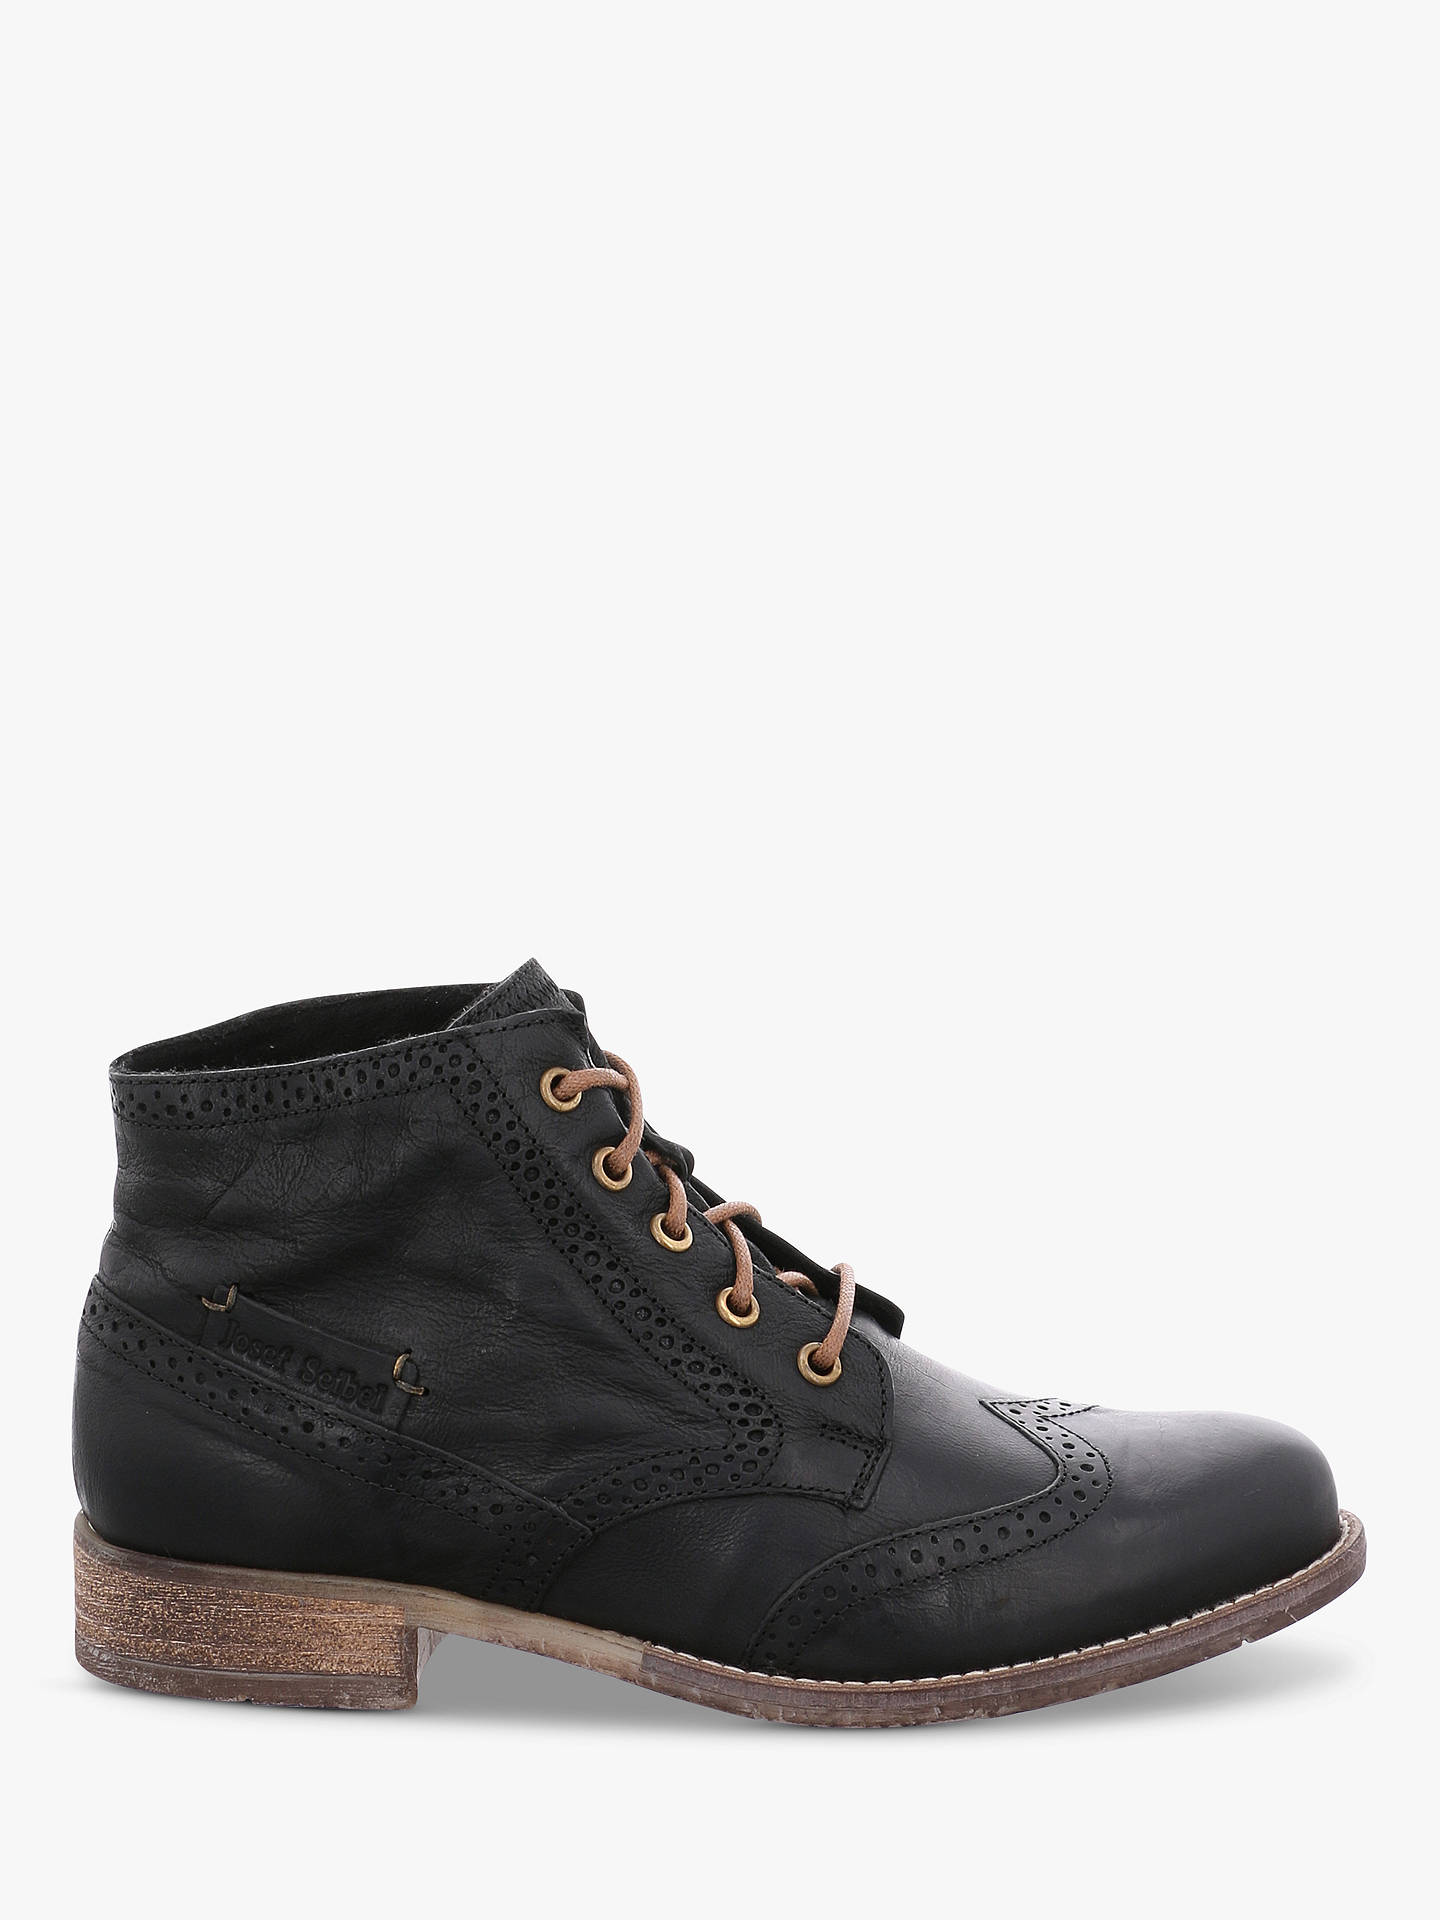 4b7c8b09b1f Josef Seibel Sienna 15 Lace Up Ankle Boots at John Lewis & Partners